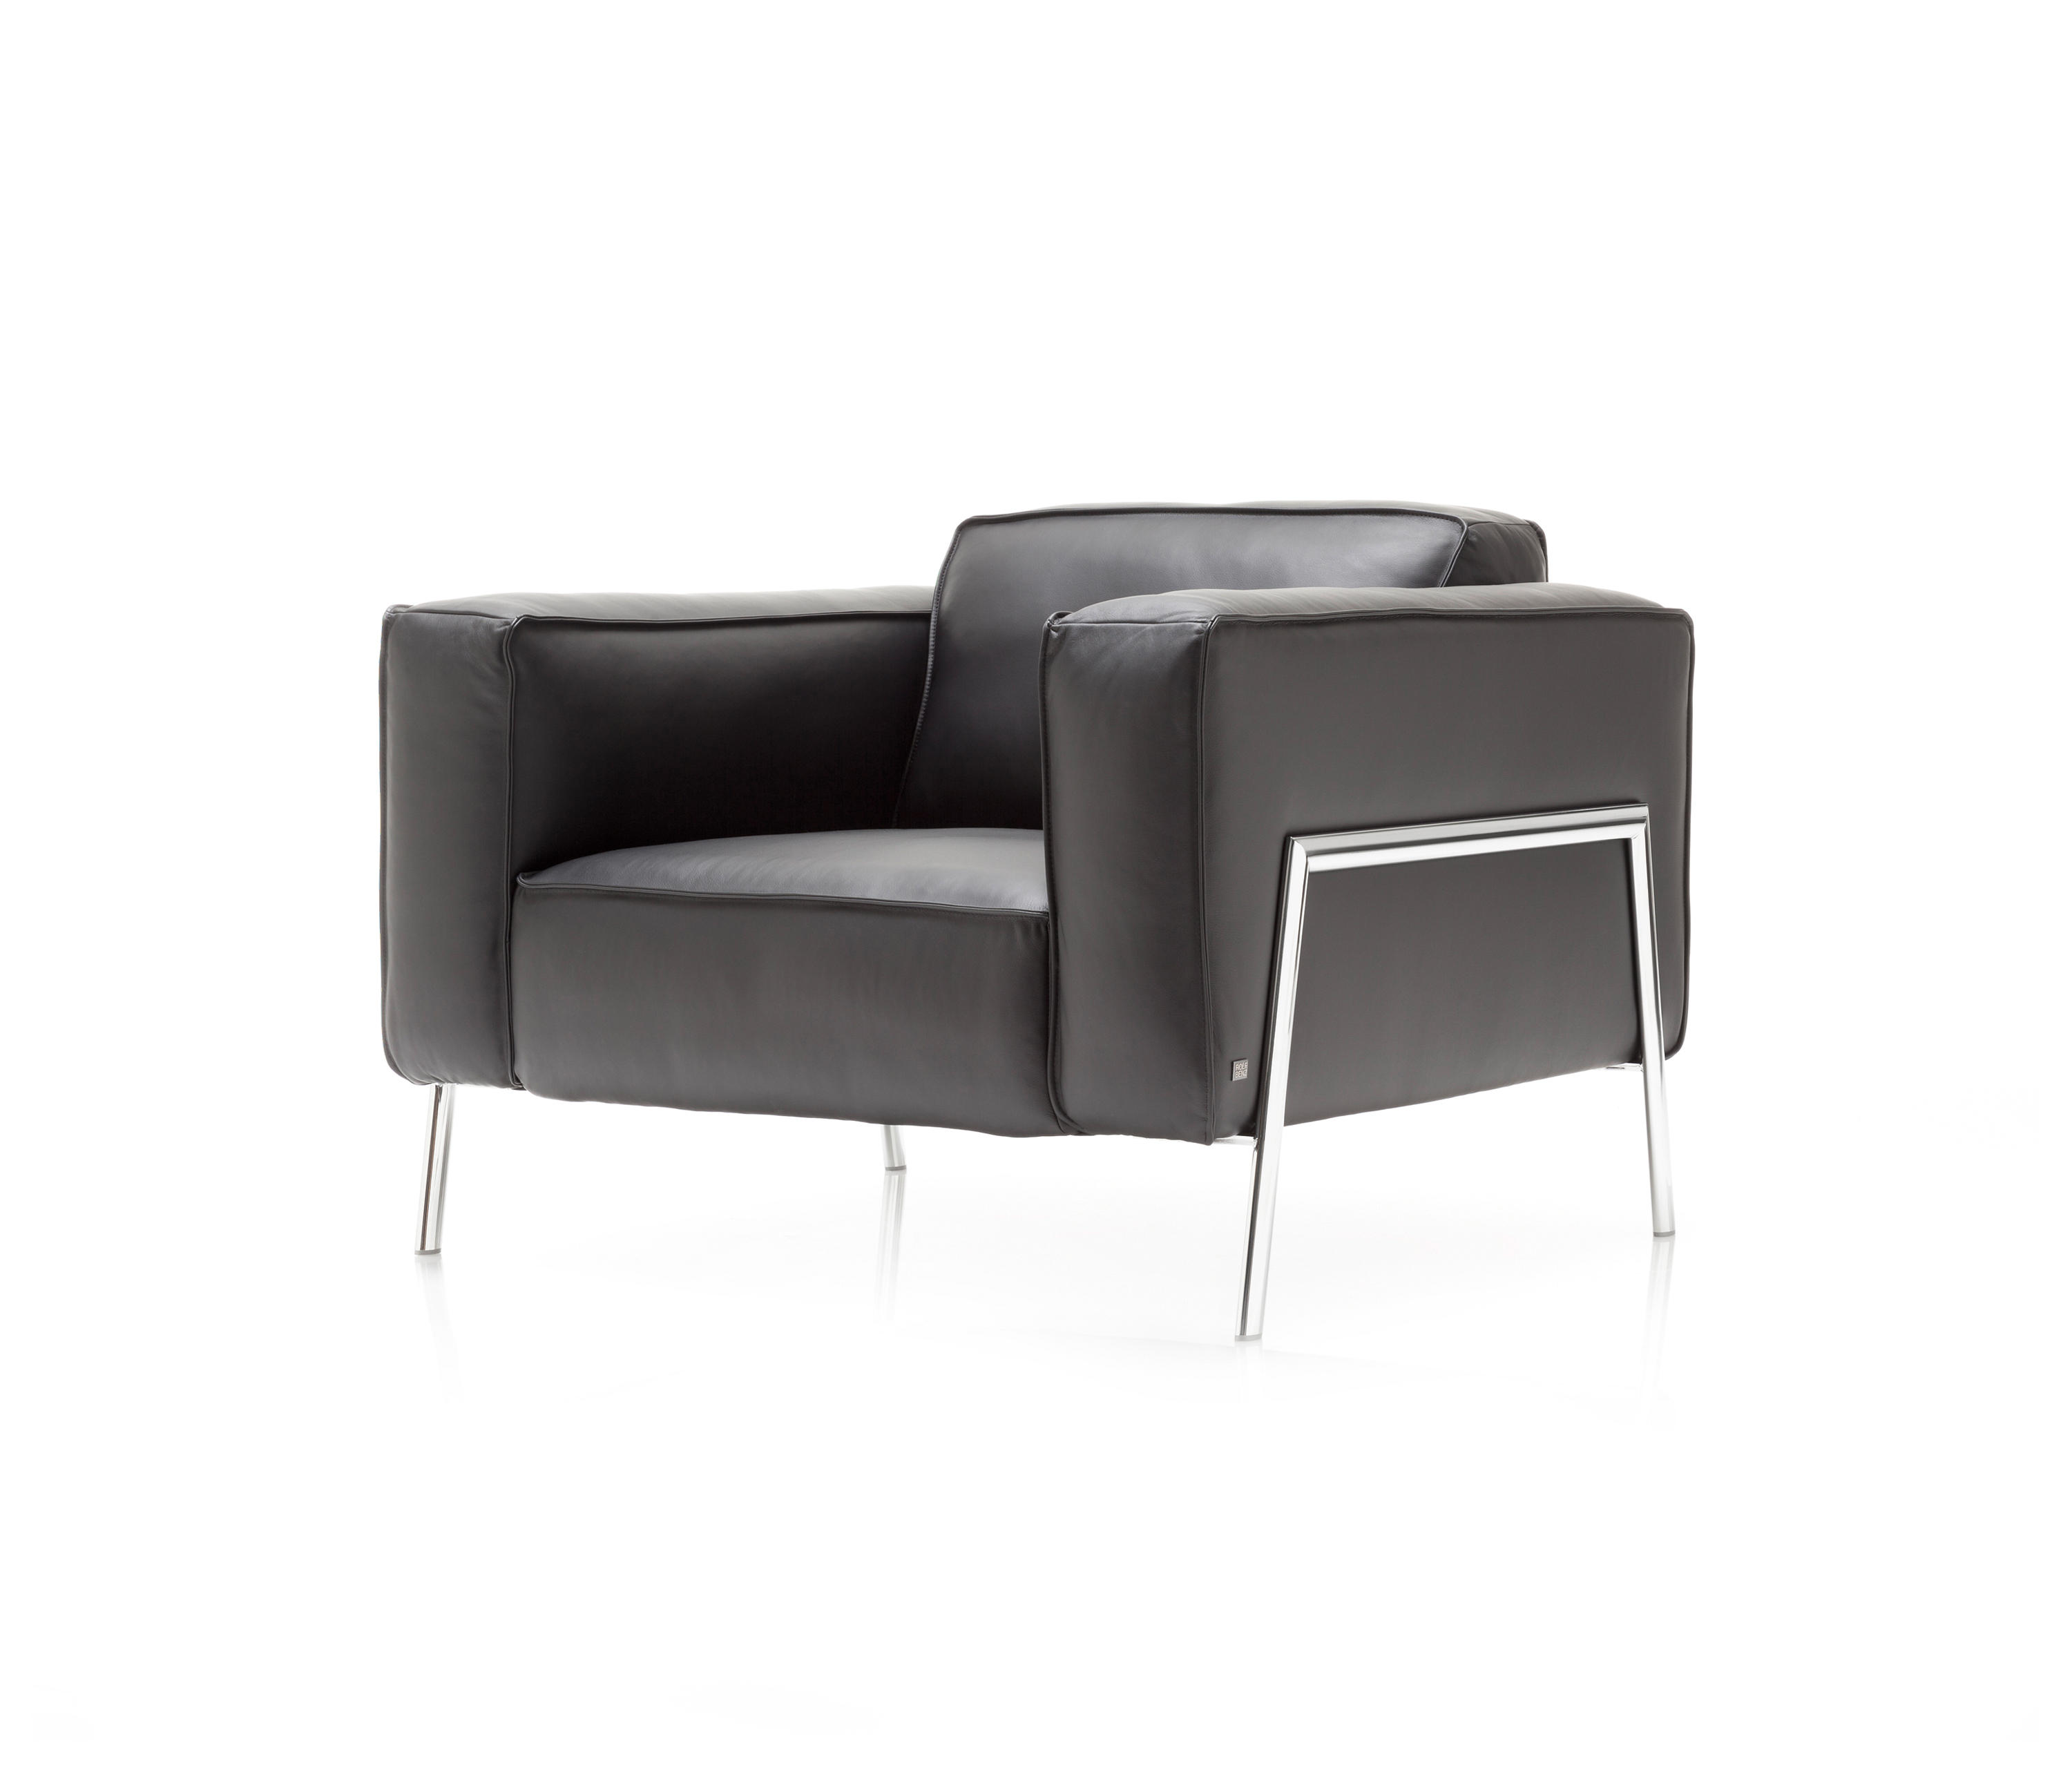 rolf benz bacio lounge chairs by rolf benz architonic. Black Bedroom Furniture Sets. Home Design Ideas